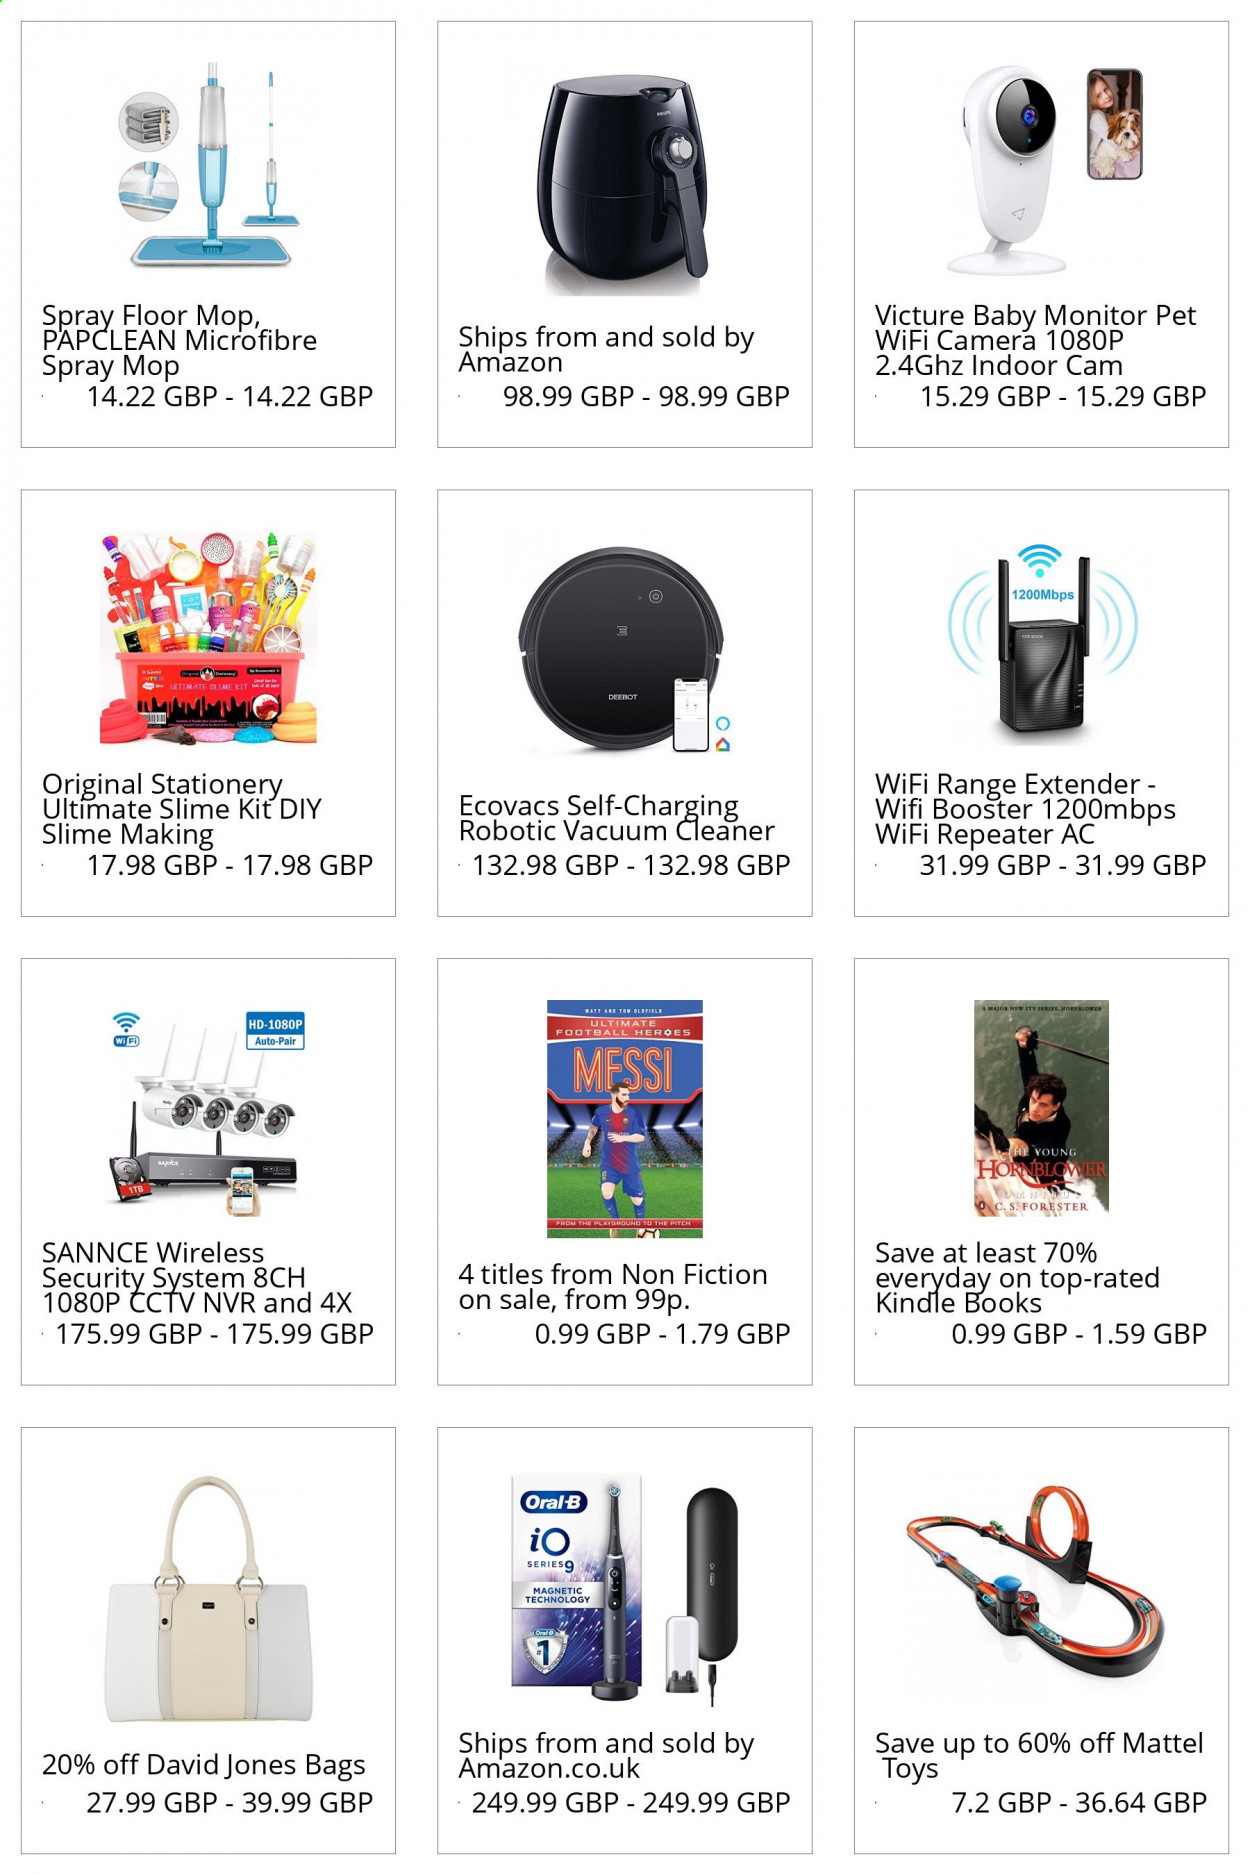 Amazon offer  - Sales products - bag, camera, mattel, monitor, spray, vacuum, vacuum cleaner, wifi, oral-b, toys, wireless, amazon, mop, cleaner, extender, range extender, ecovacs. Page 1.